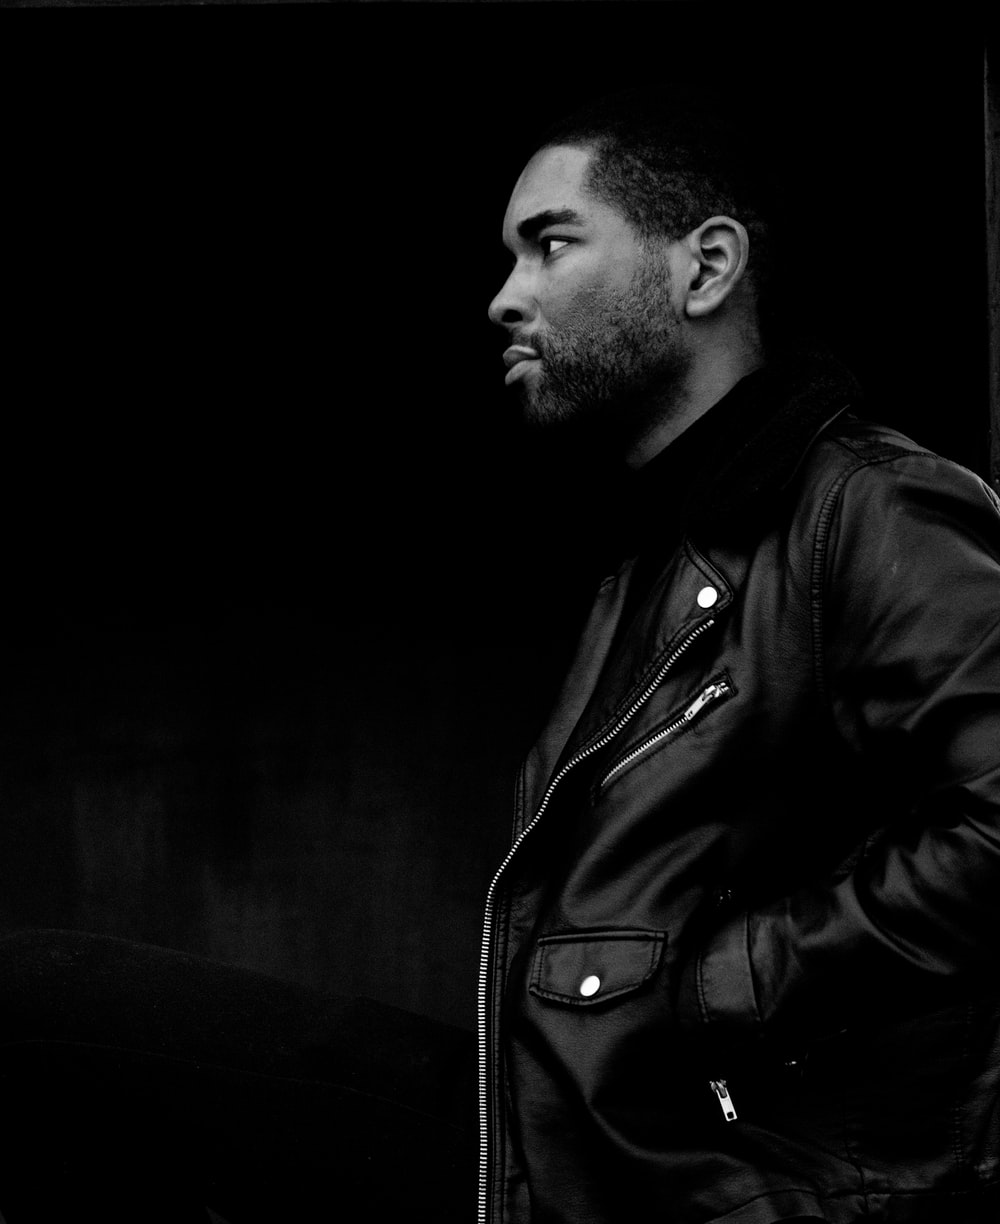 grayscale photography of man wearing leather jacket